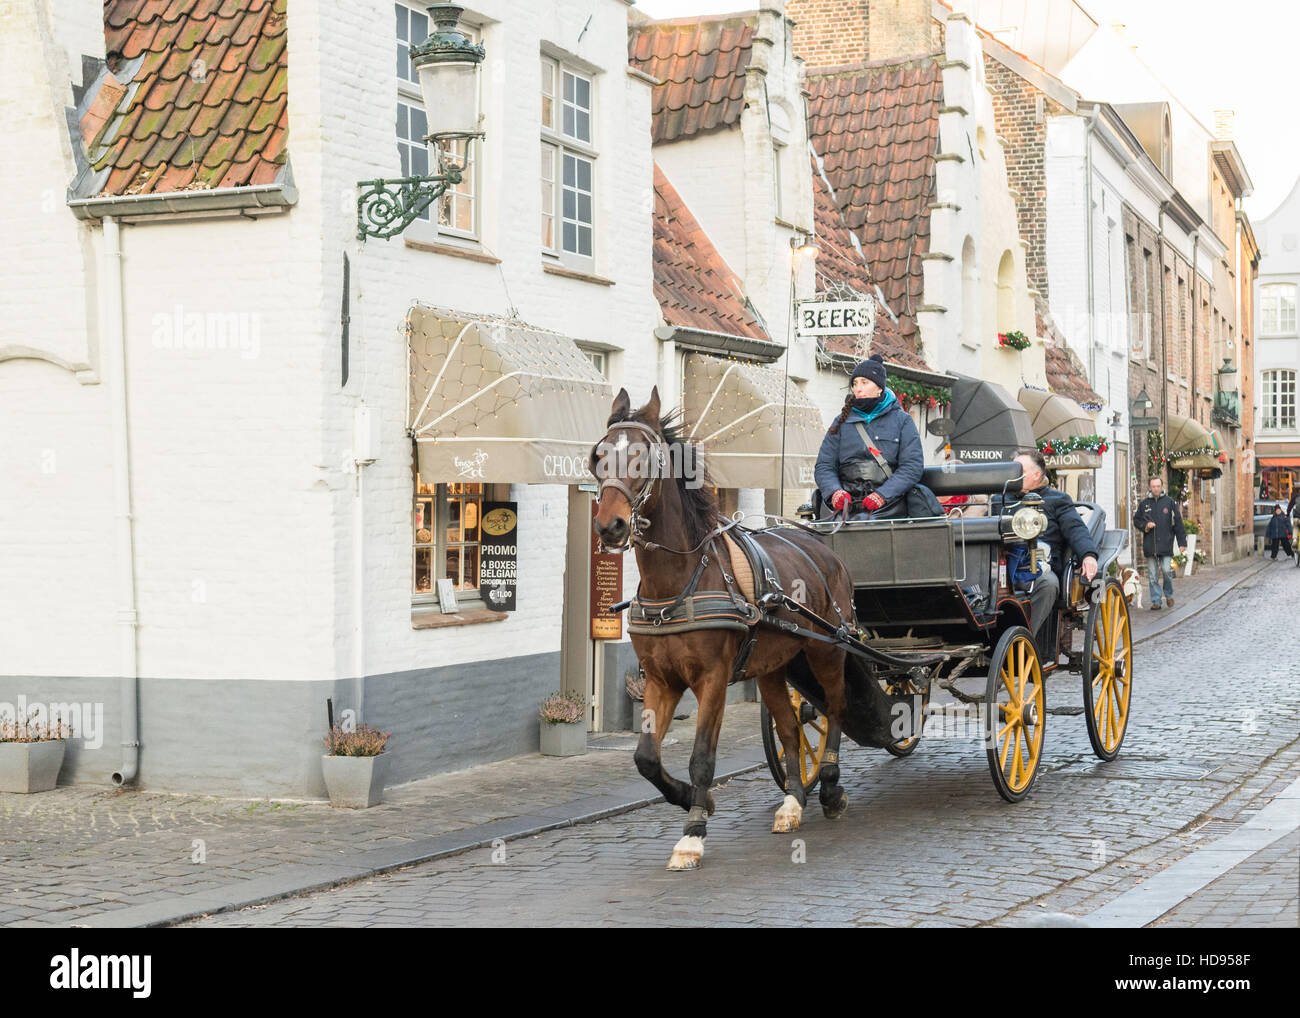 Bruges Belgium tourism - horse and carriage - Stock Image